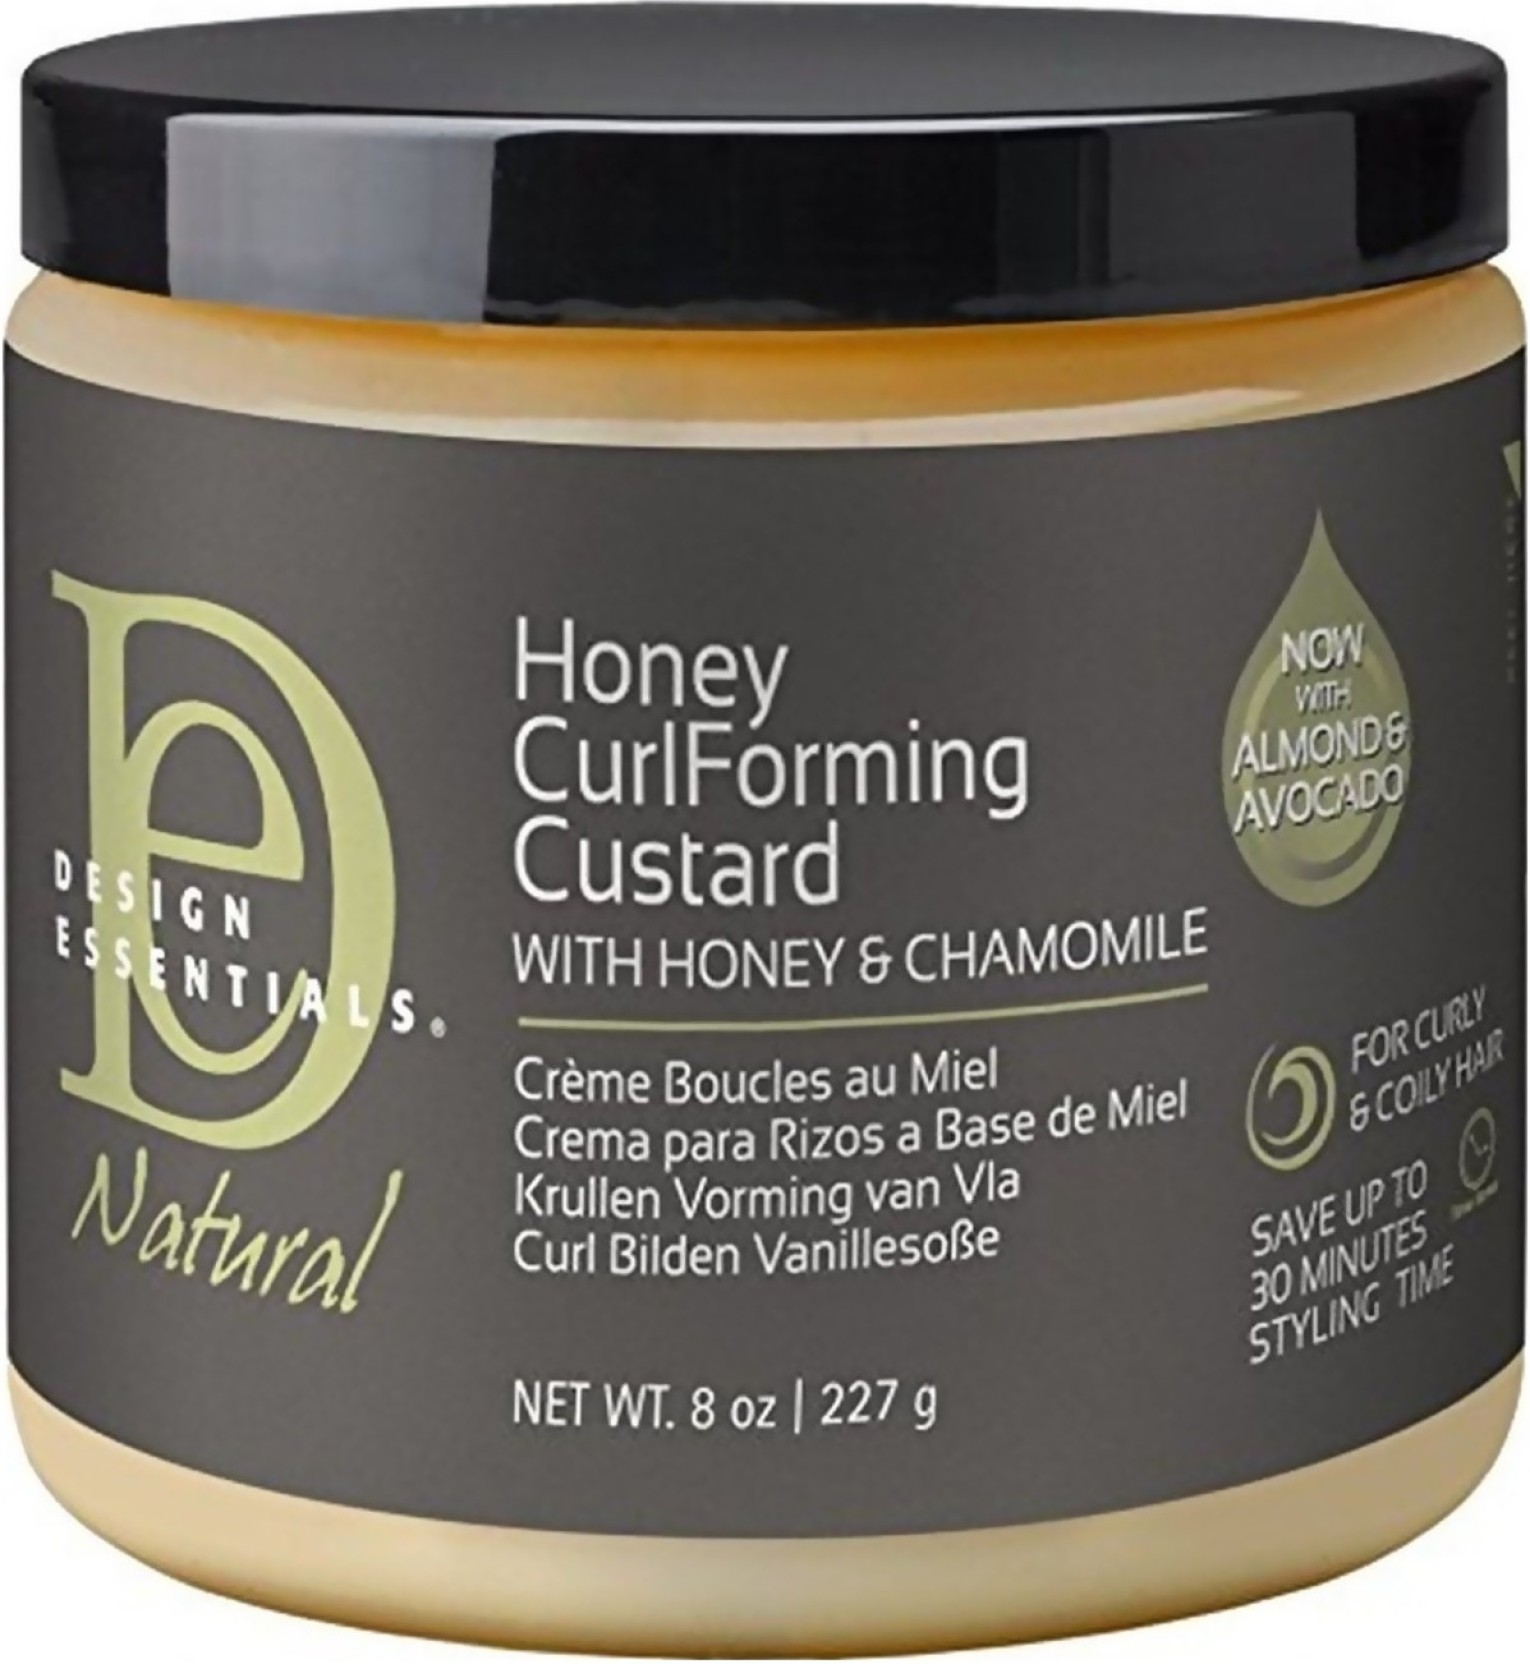 Design Essentials Natural Honey Curl Forming Hair Styler Price In